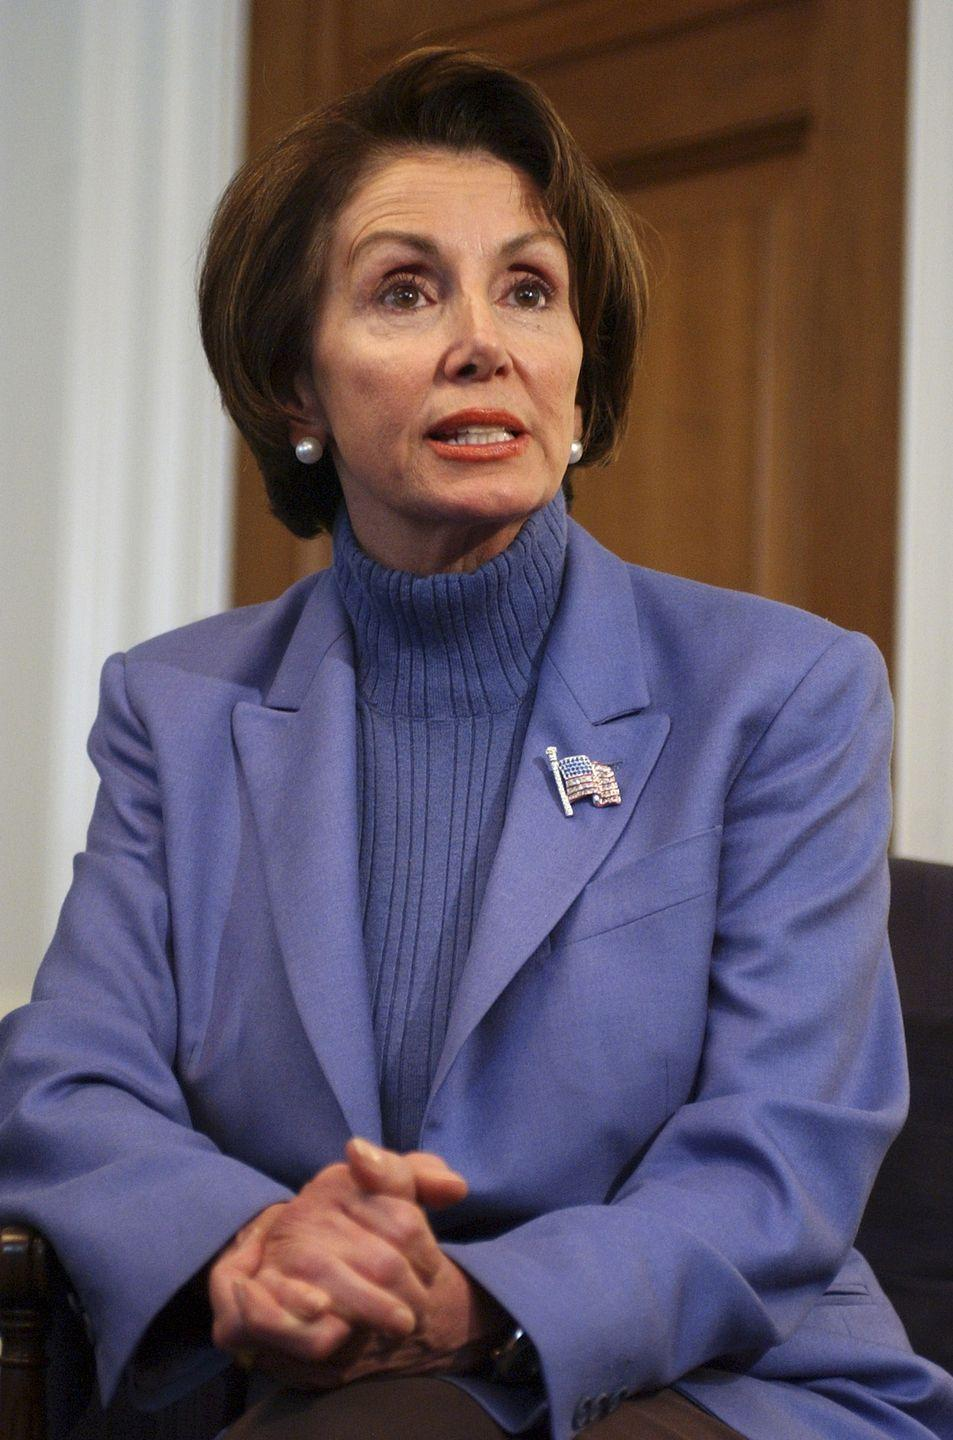 <p>Pelosi speaking to the press.</p>